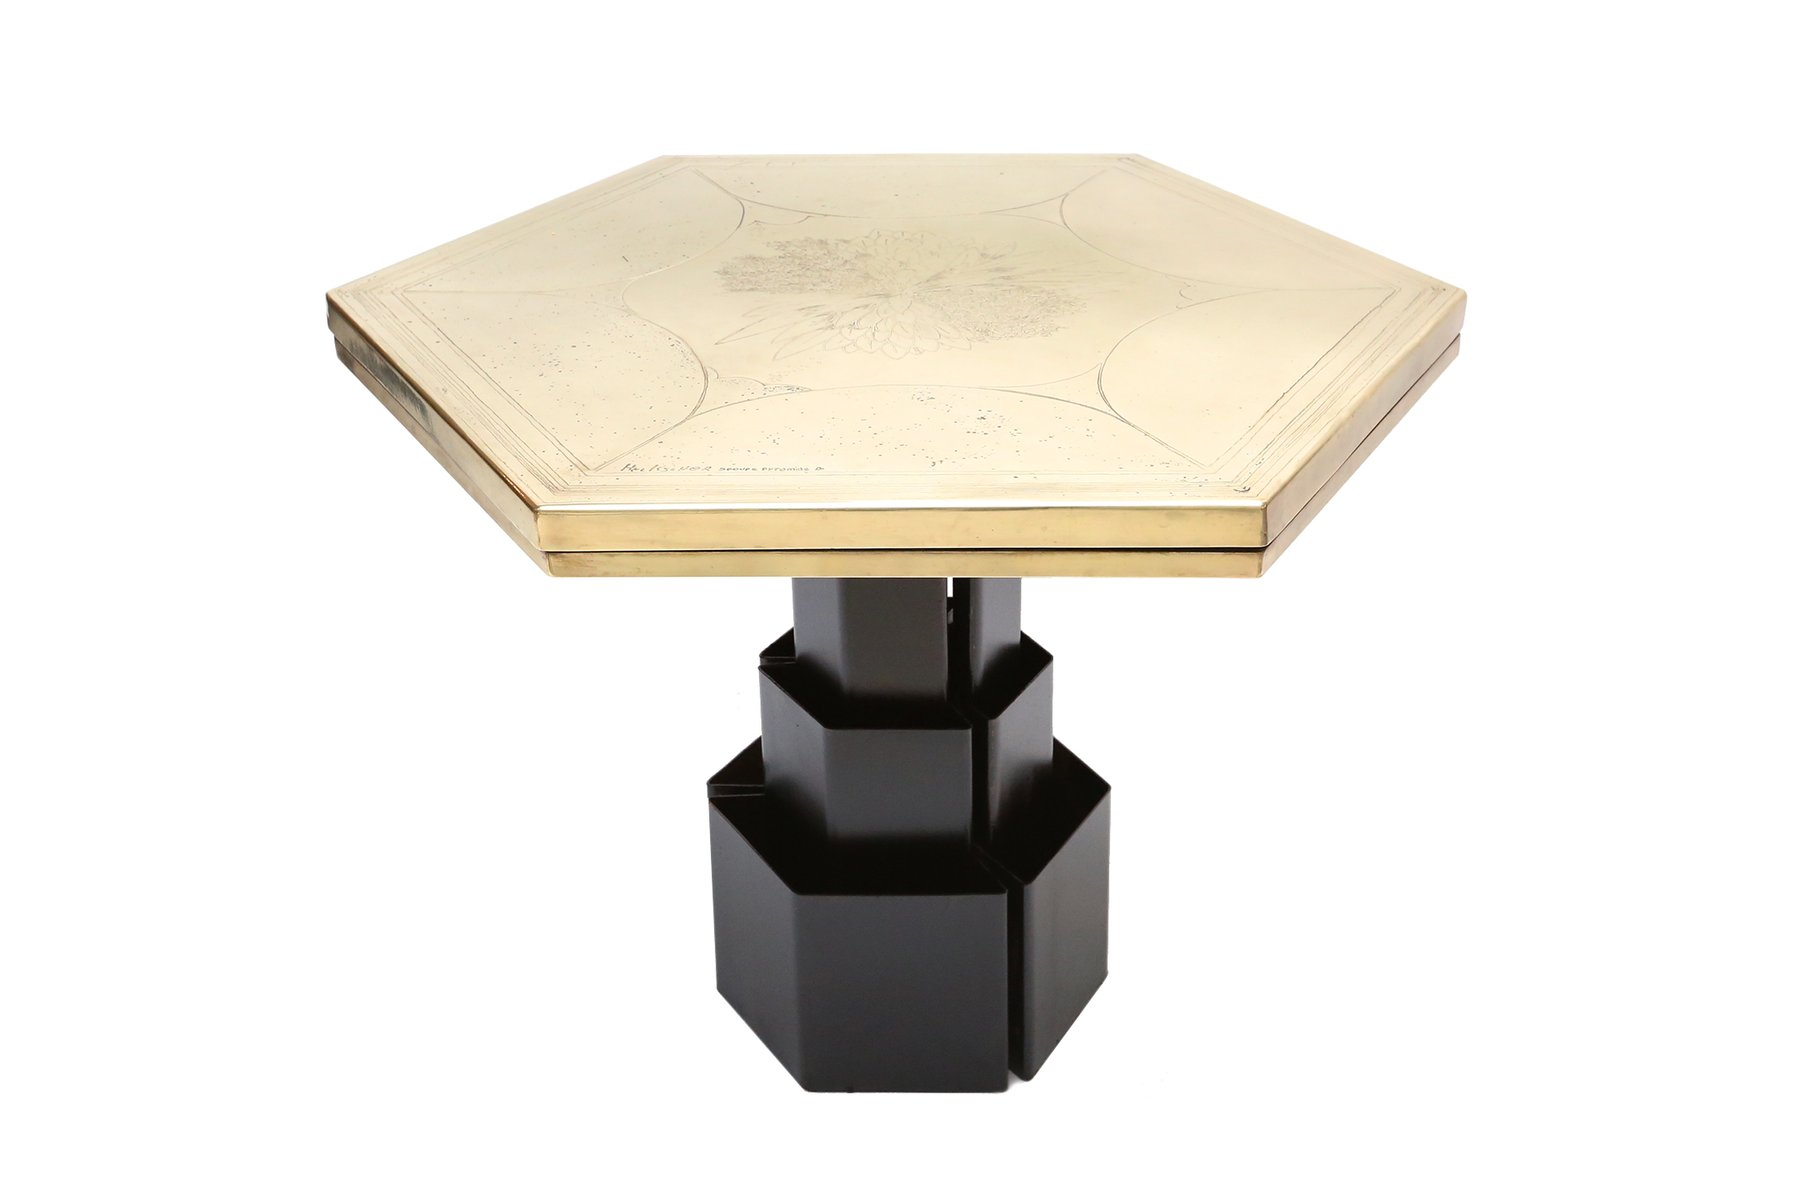 Hexagonal Table By Christian Heckscher 1980s For Sale At